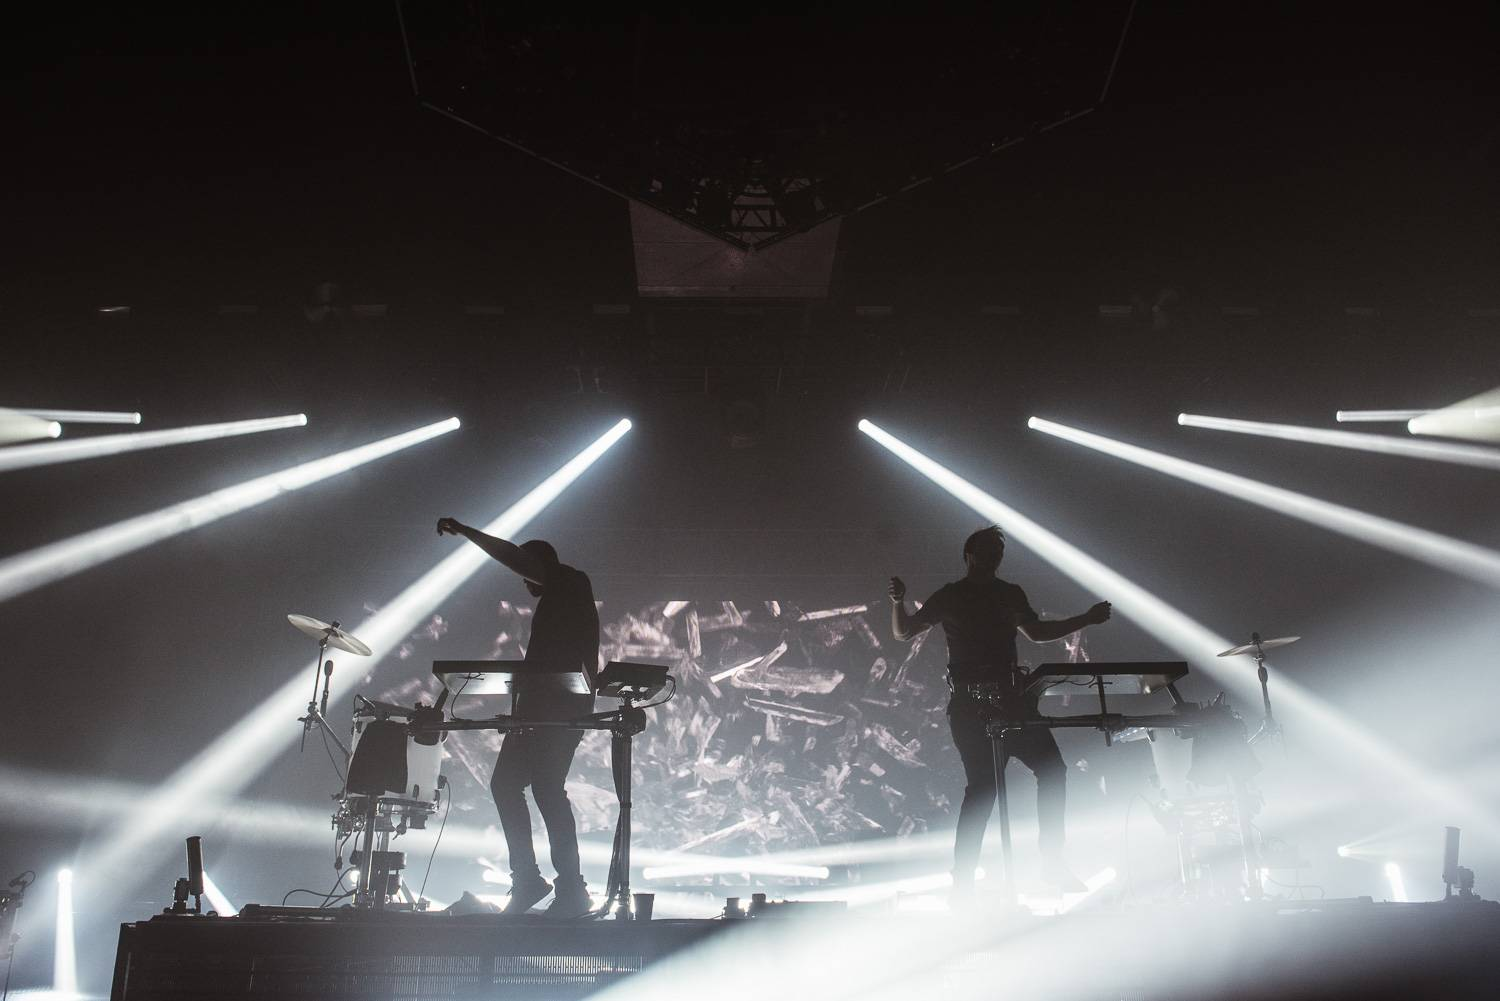 Odesza at the PNE Forum, Vancouver, Nov 3 2017. Pavel Boiko photo.